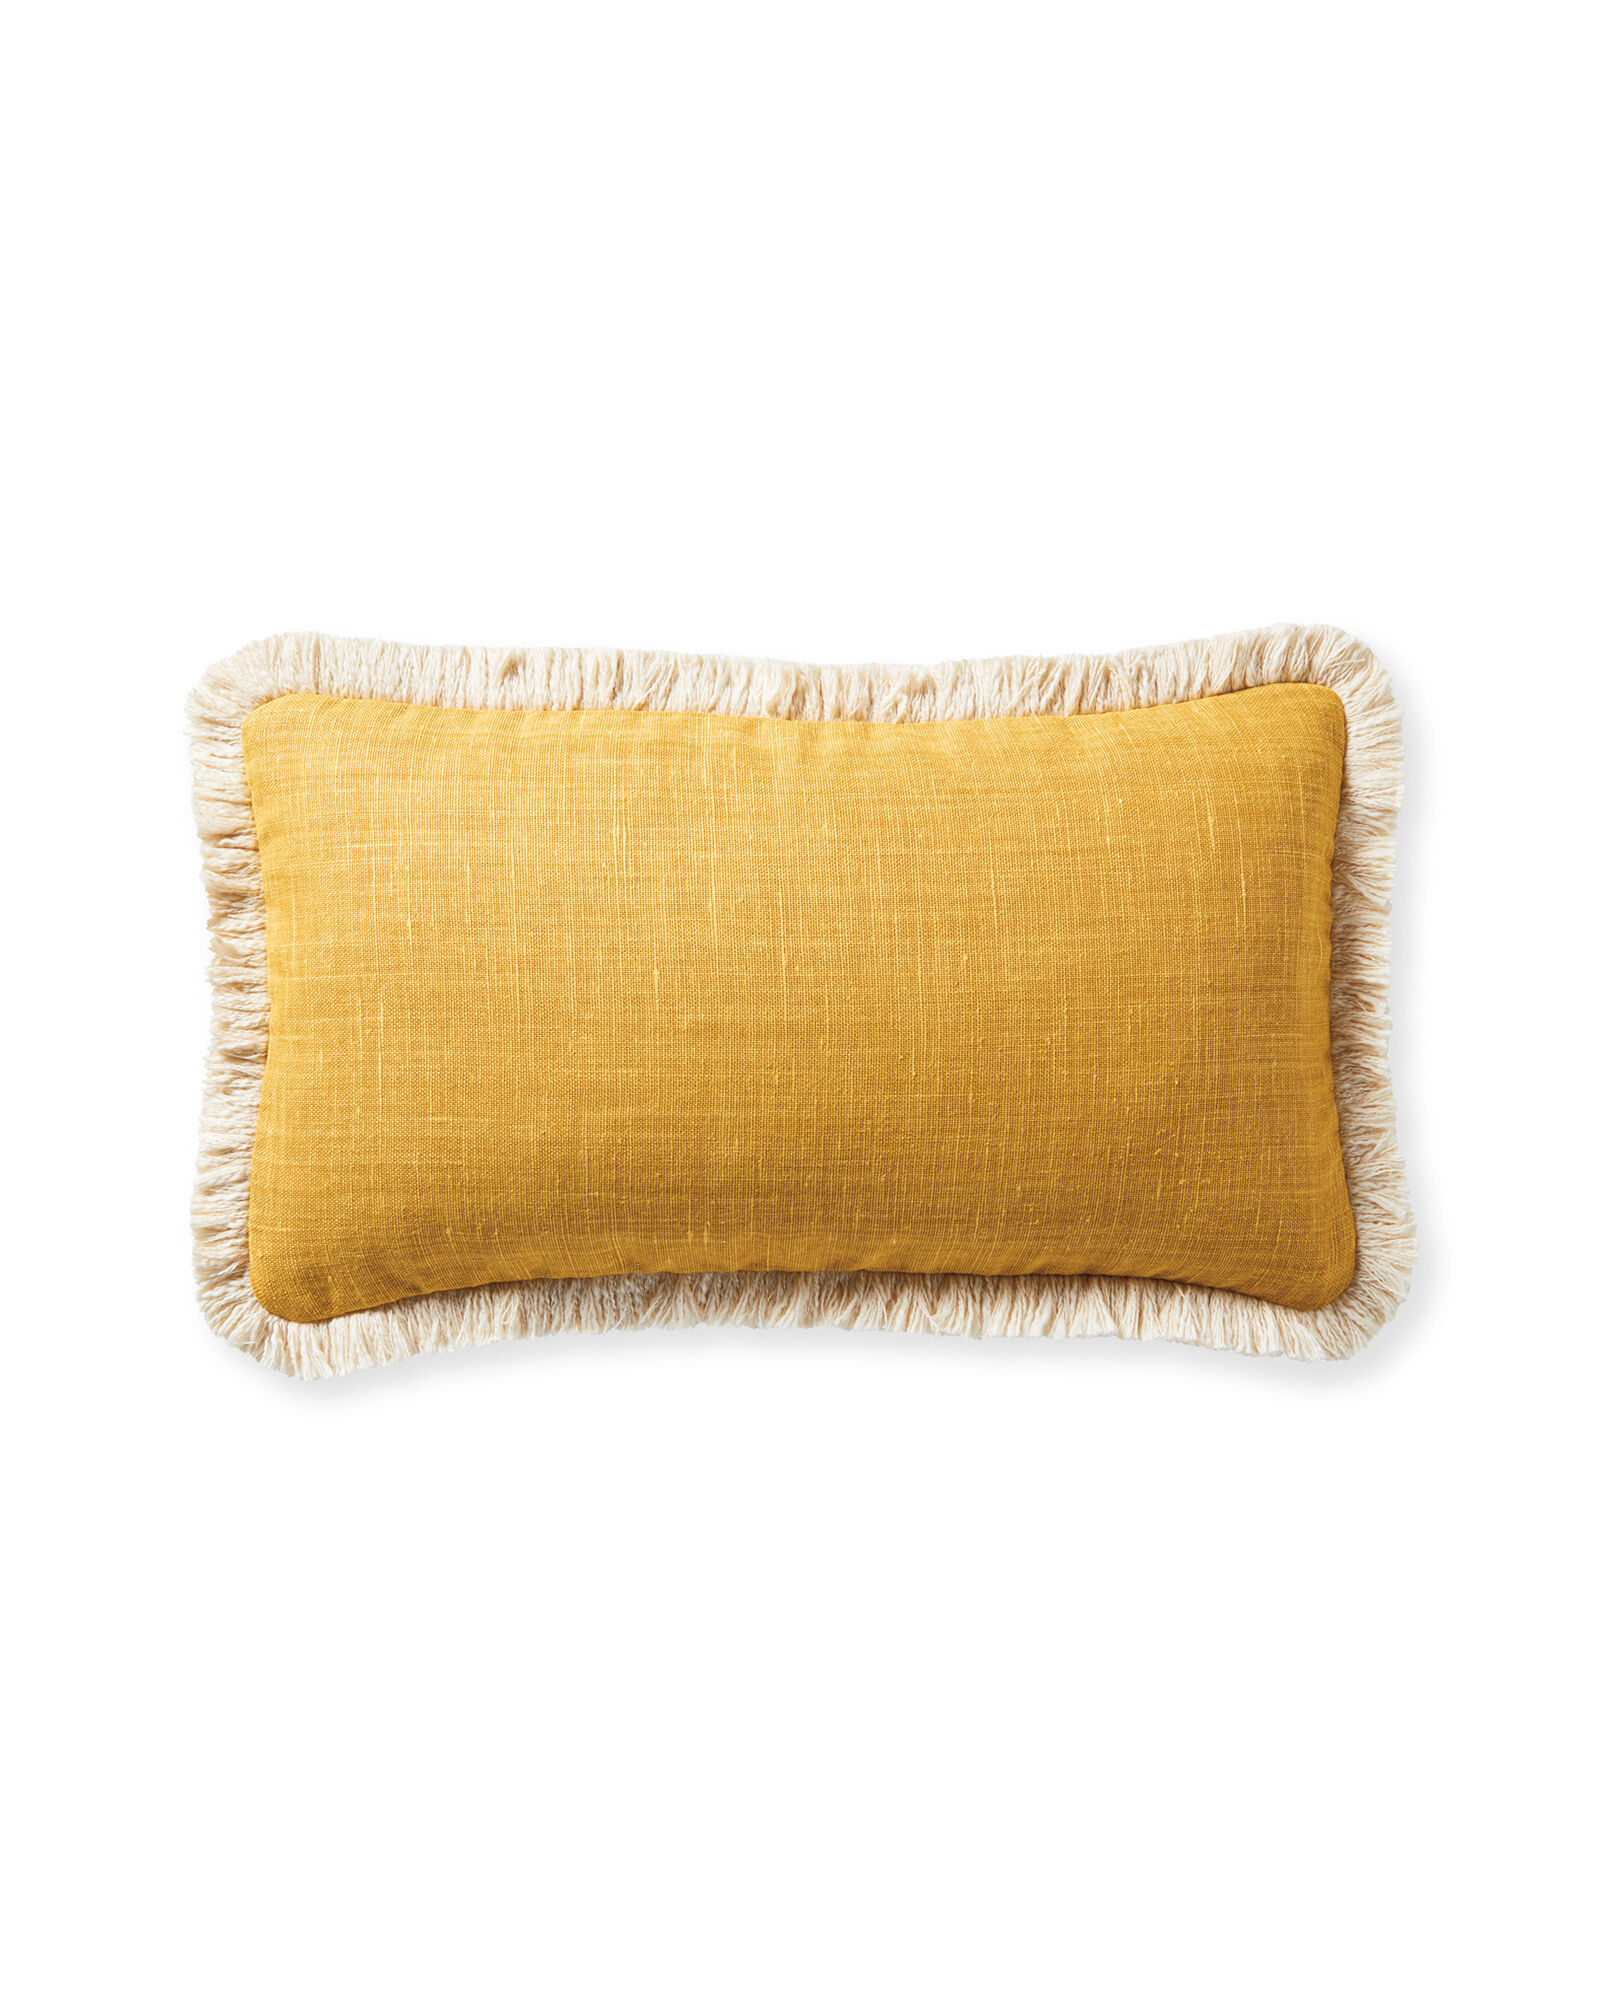 Bowden Pillow Cover